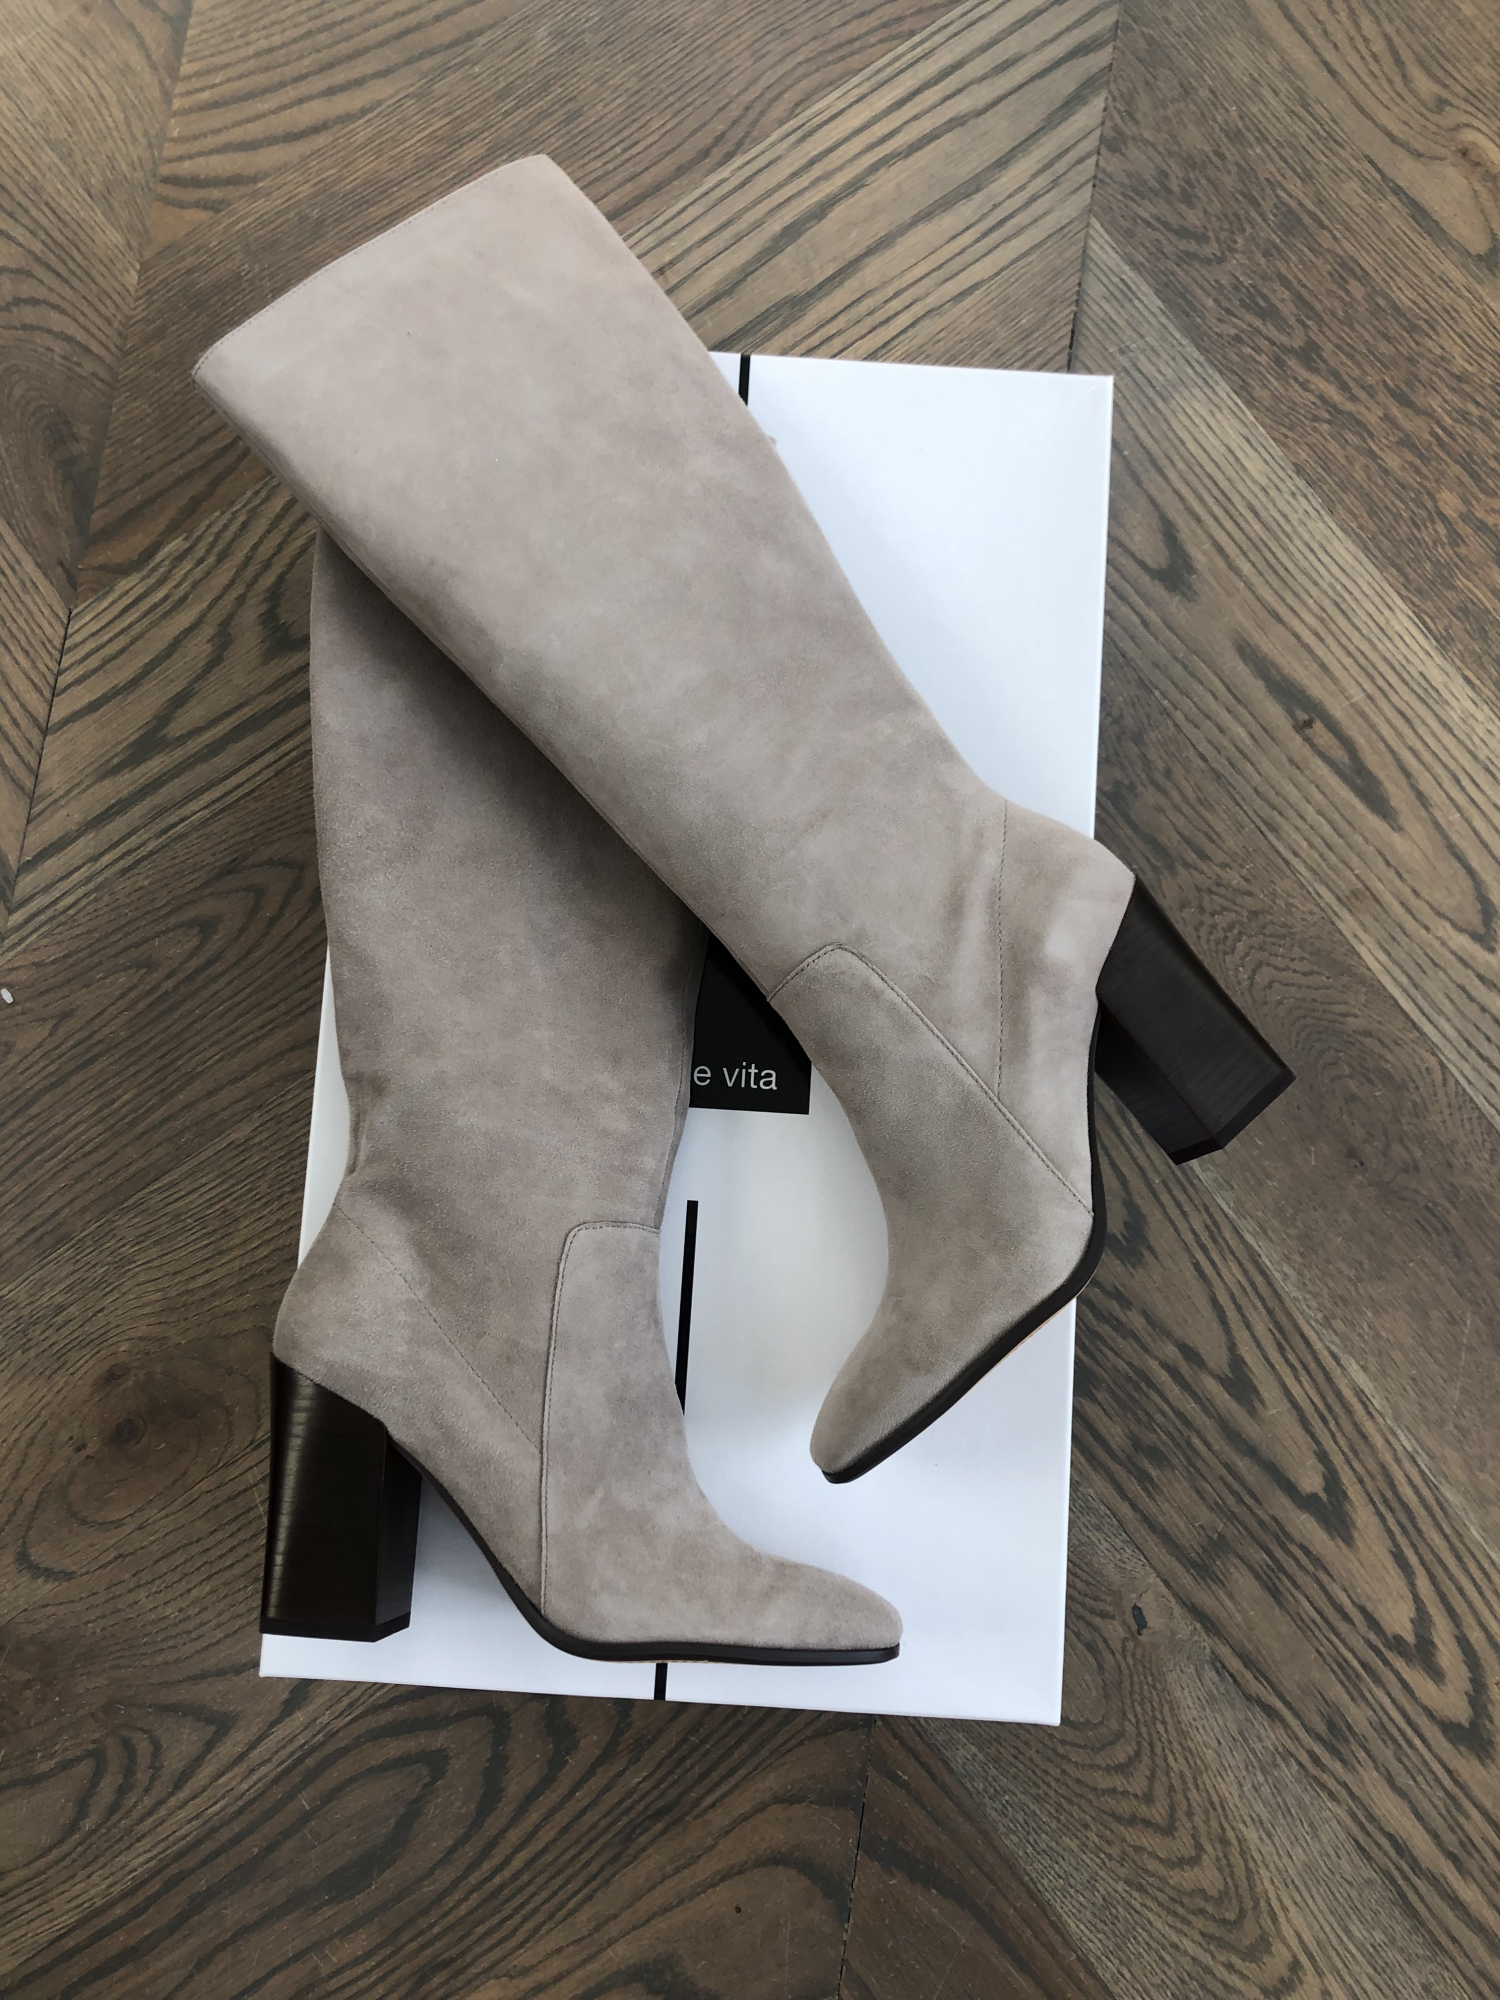 Shopbop sale fall 2019, taupe dolce vita boots, best knee boots taupe suade